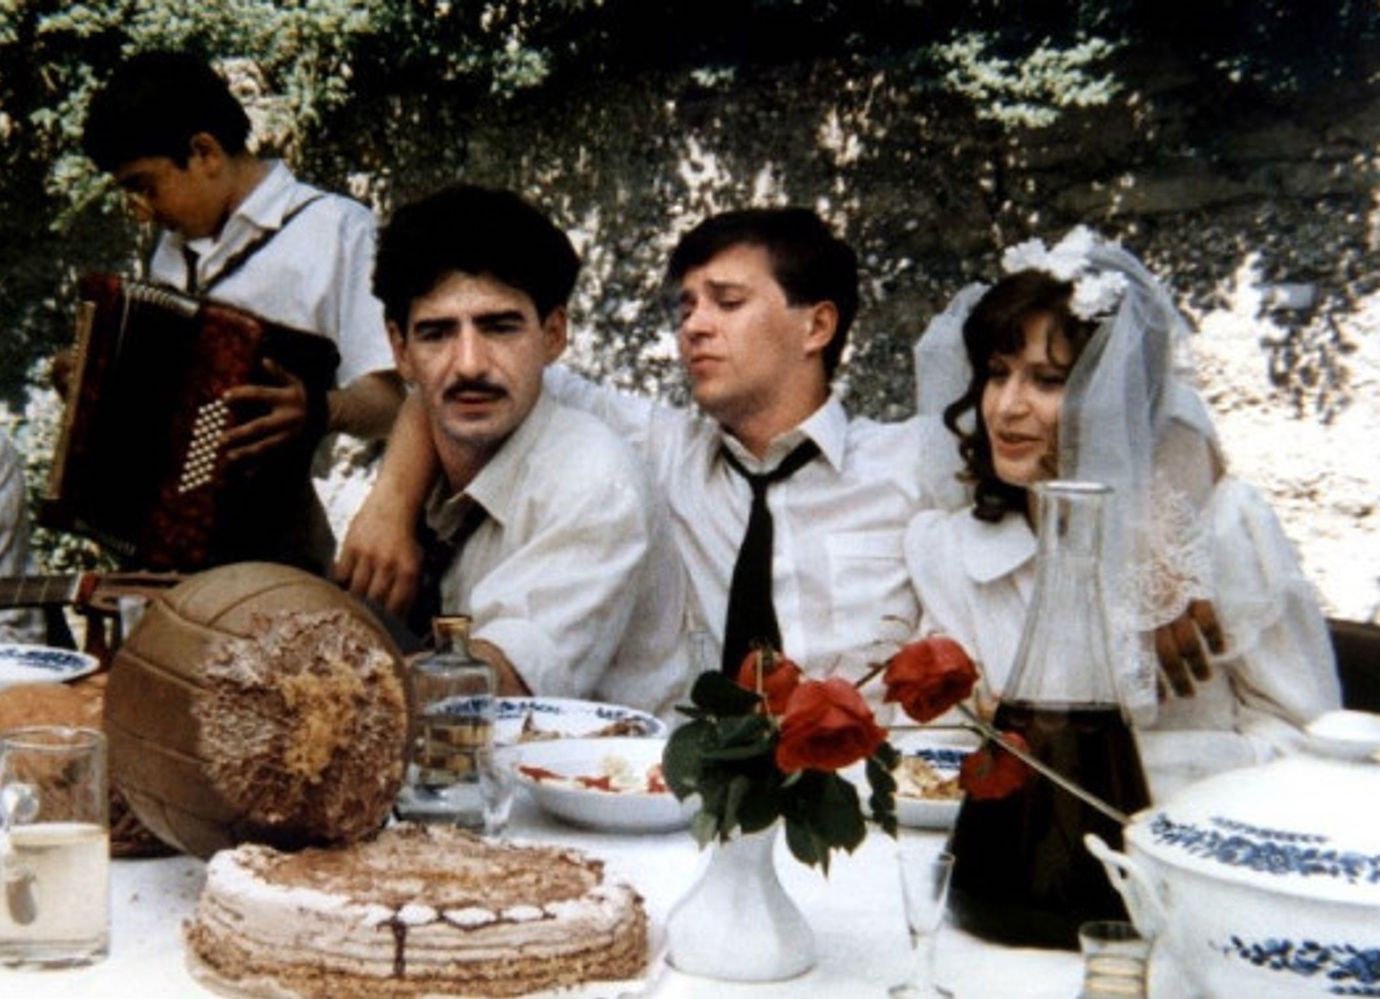 Emir Kusturica: where to start with his films